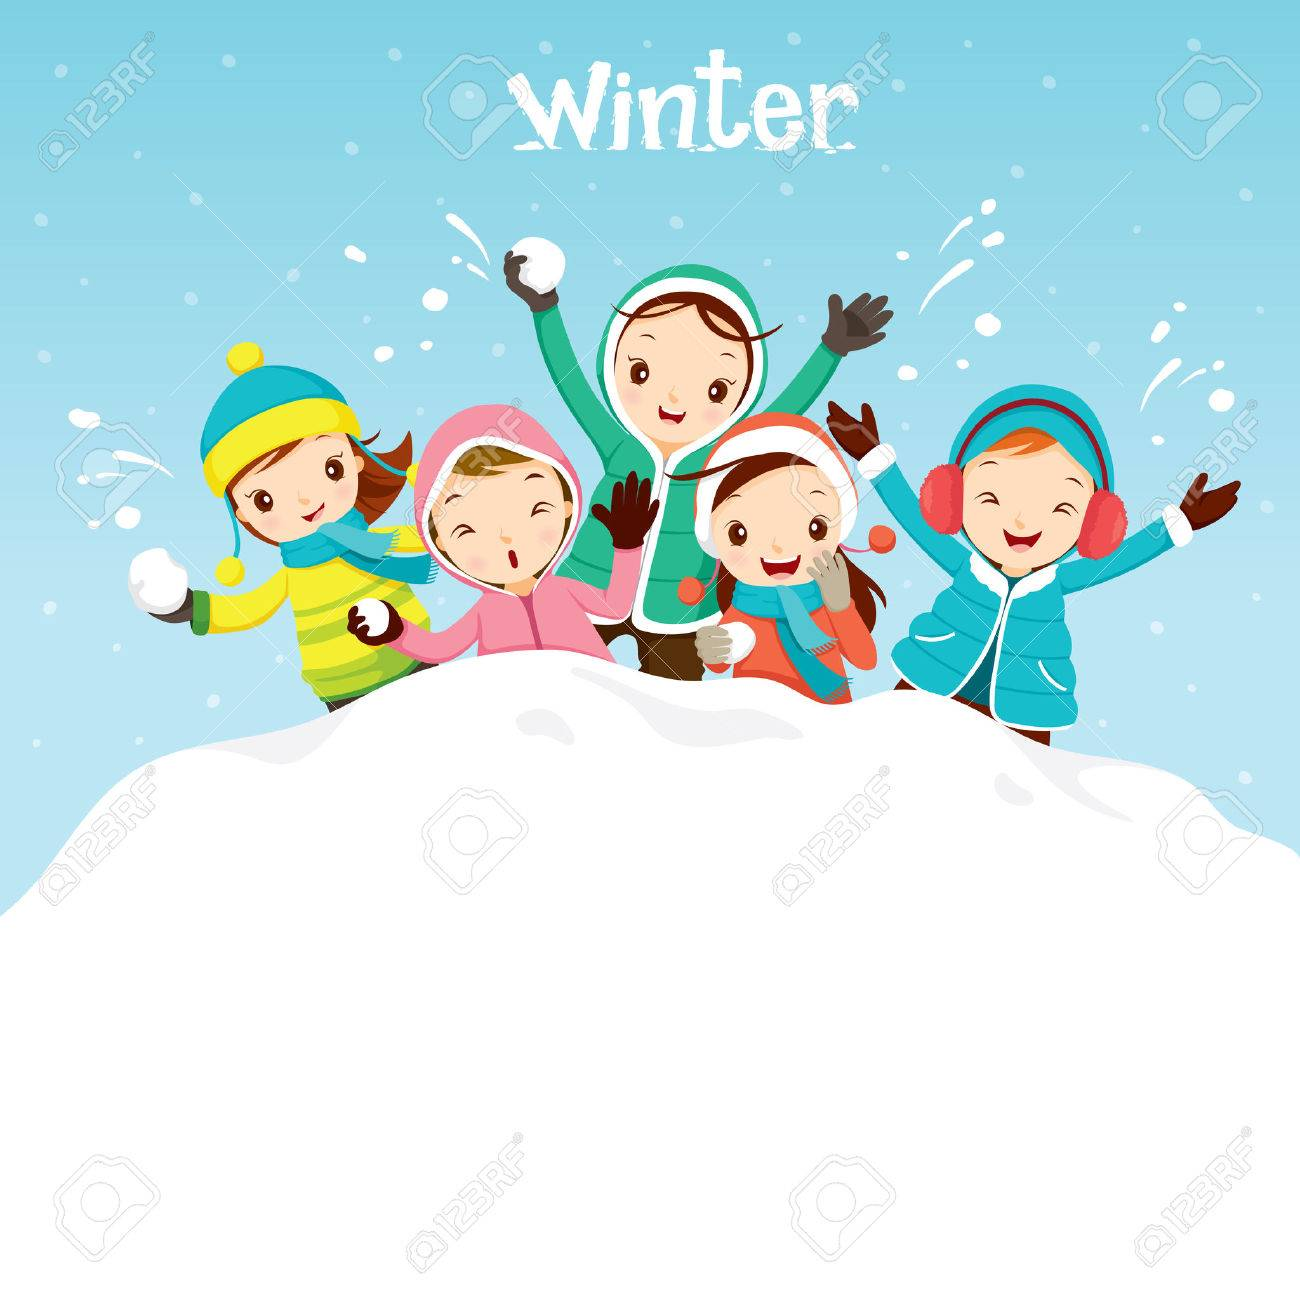 Children Playing Snow Together, Activity, Travel, Winter, Season, Vacation, holiday, Nature, Object - 54345878